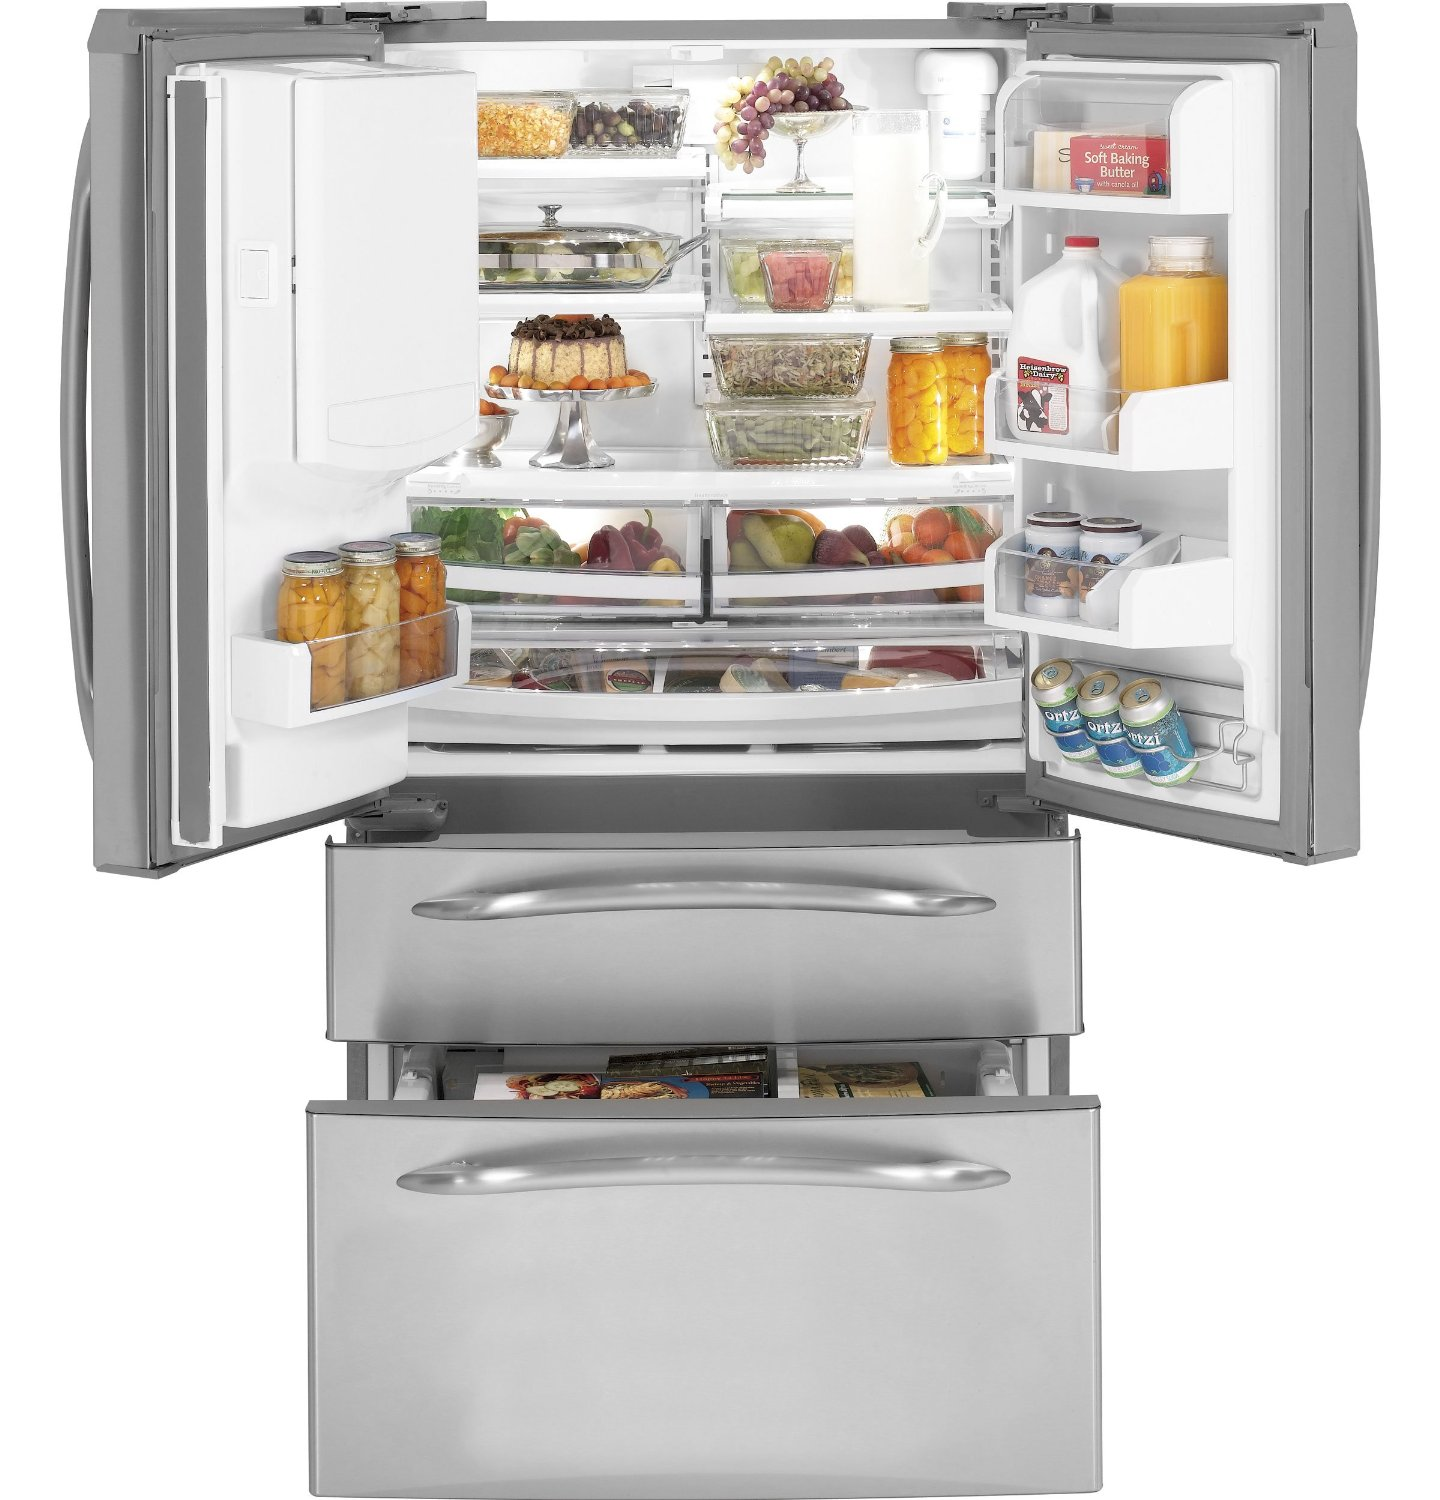 Depth Refrigerator (Stainless Steel) (View 1 of 10)